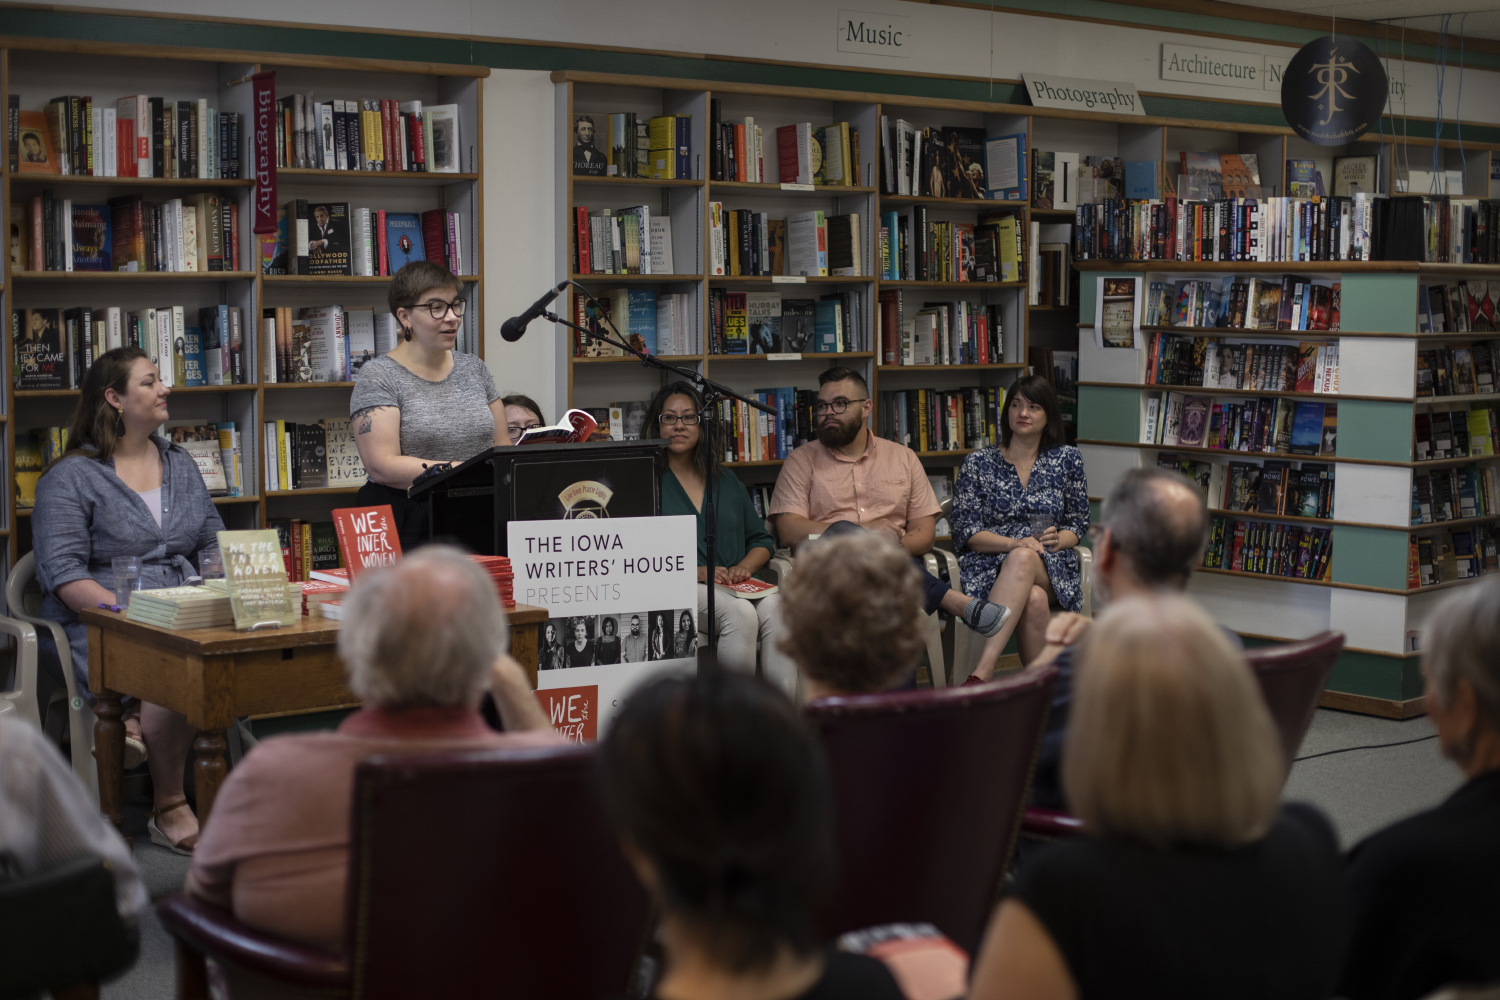 During Iowa Writers' House's launch at Prairie Lights on June 29, 2019. Sarah Elgatian, a writer read her work. (Tian Liu/The Daily Iowan)